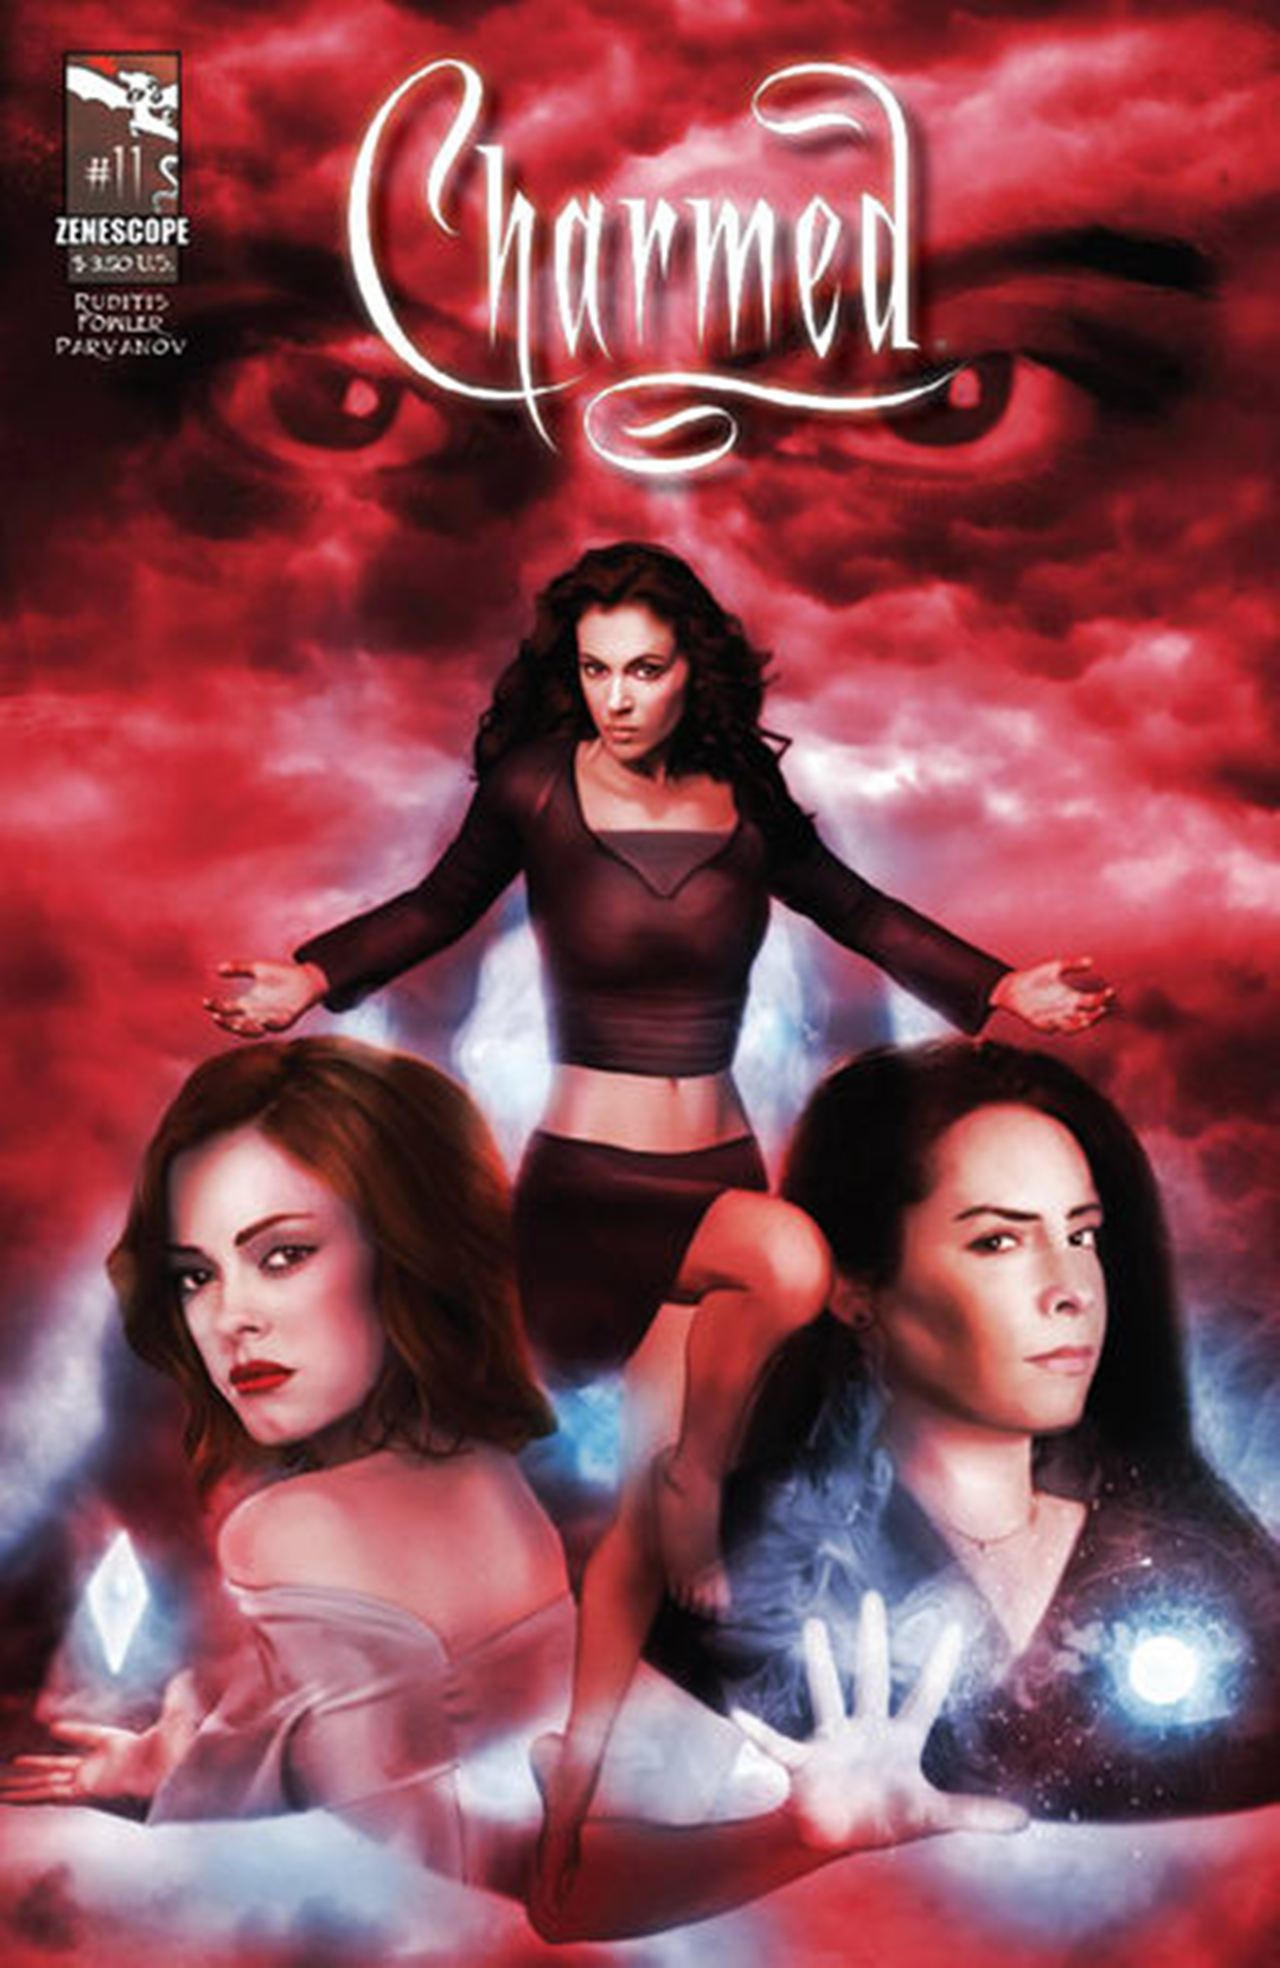 Charmed 11 Page 1